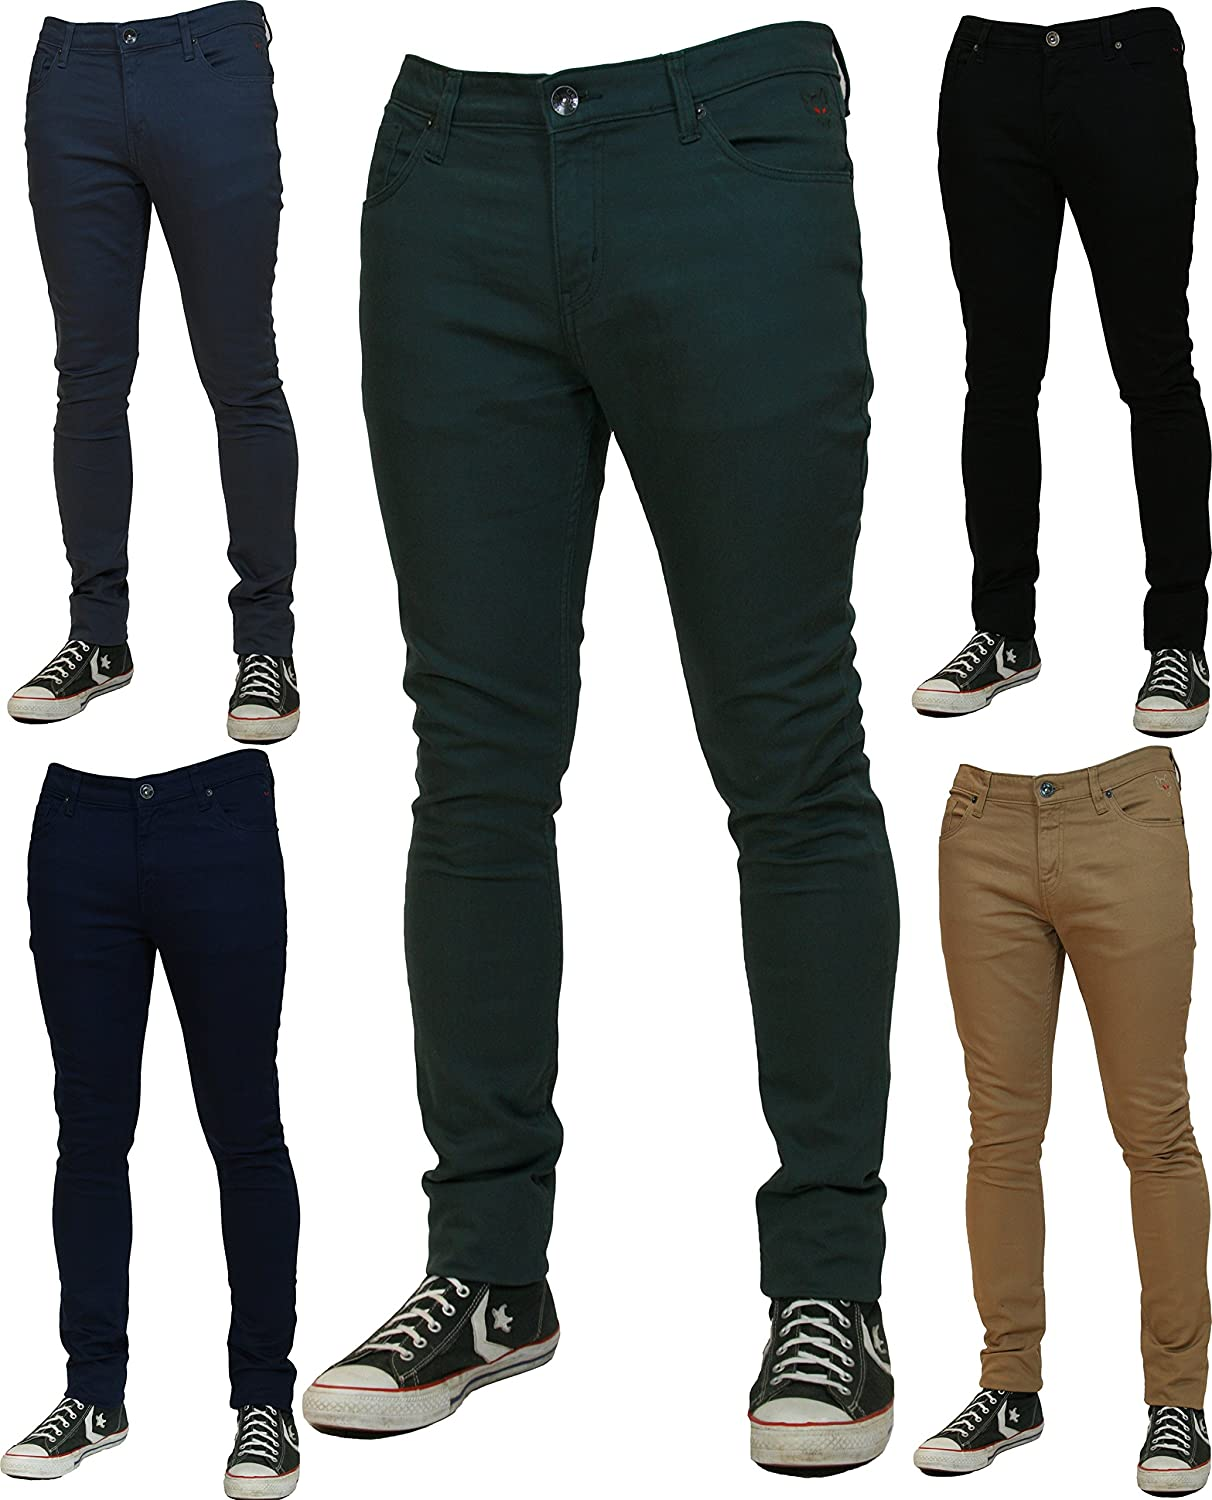 NEW GOJEE MENS SKINNY STRETCH JEANS - Slim Fit Twill Coloured Jeans Pants Chino Trousers GJSS_01